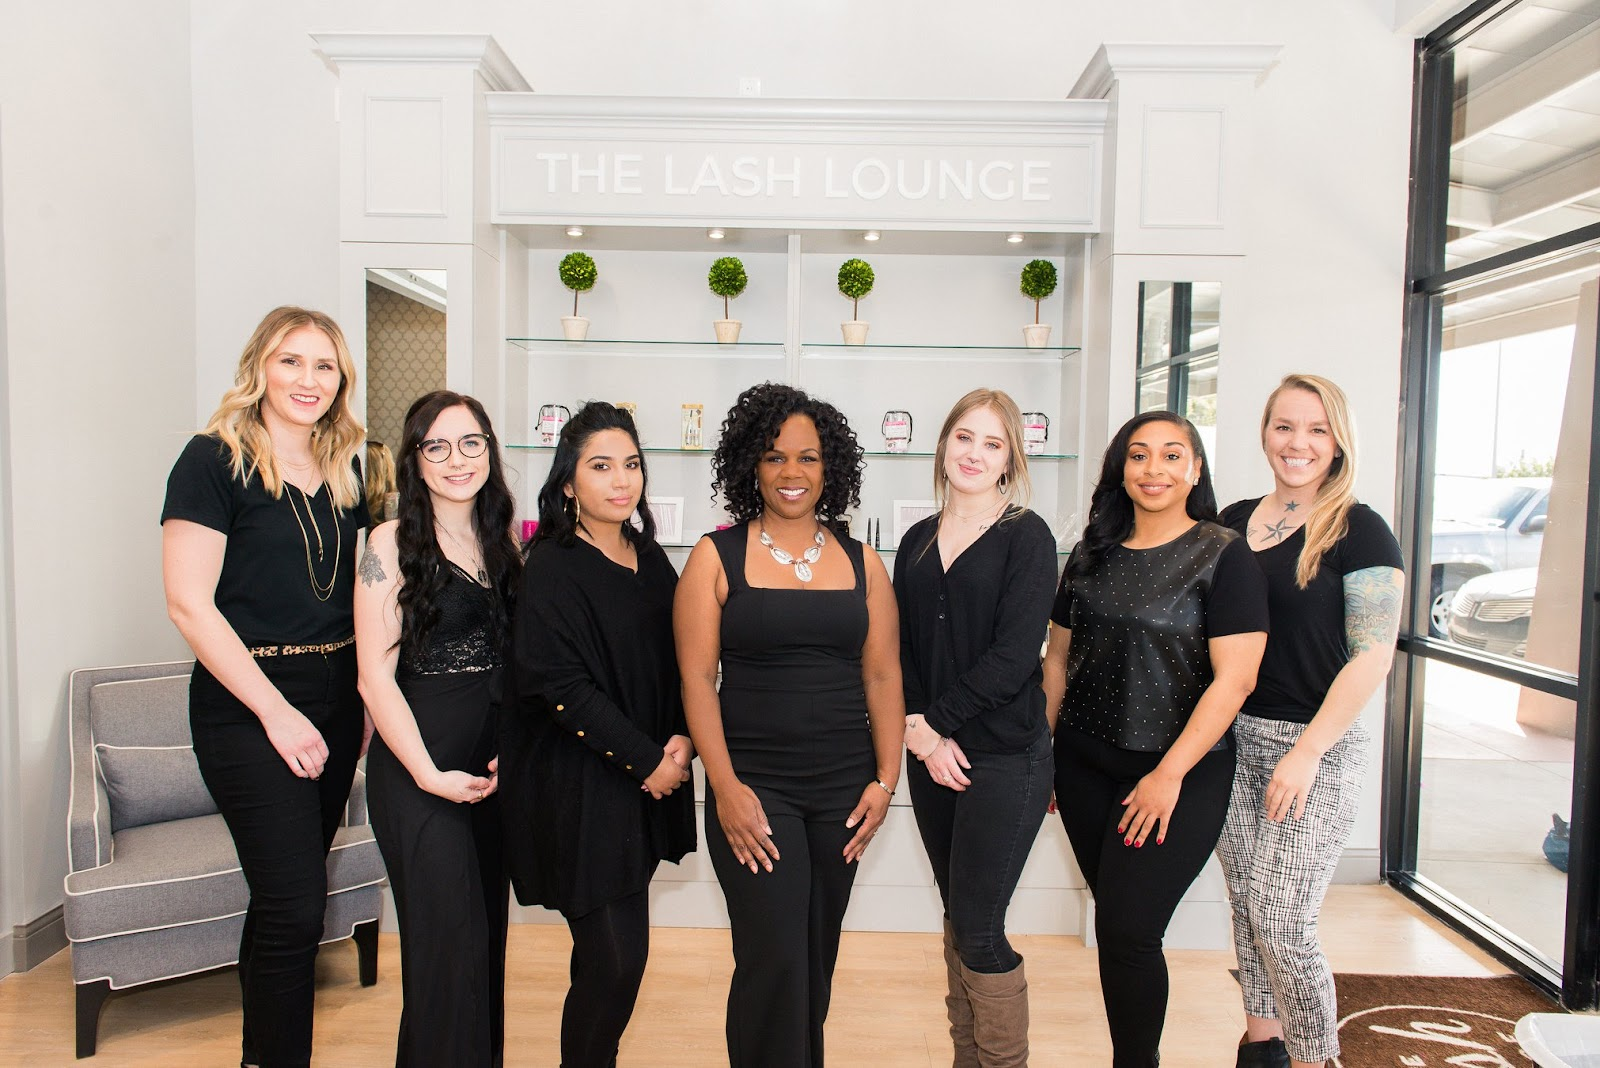 Ladies of The Lash Lounge